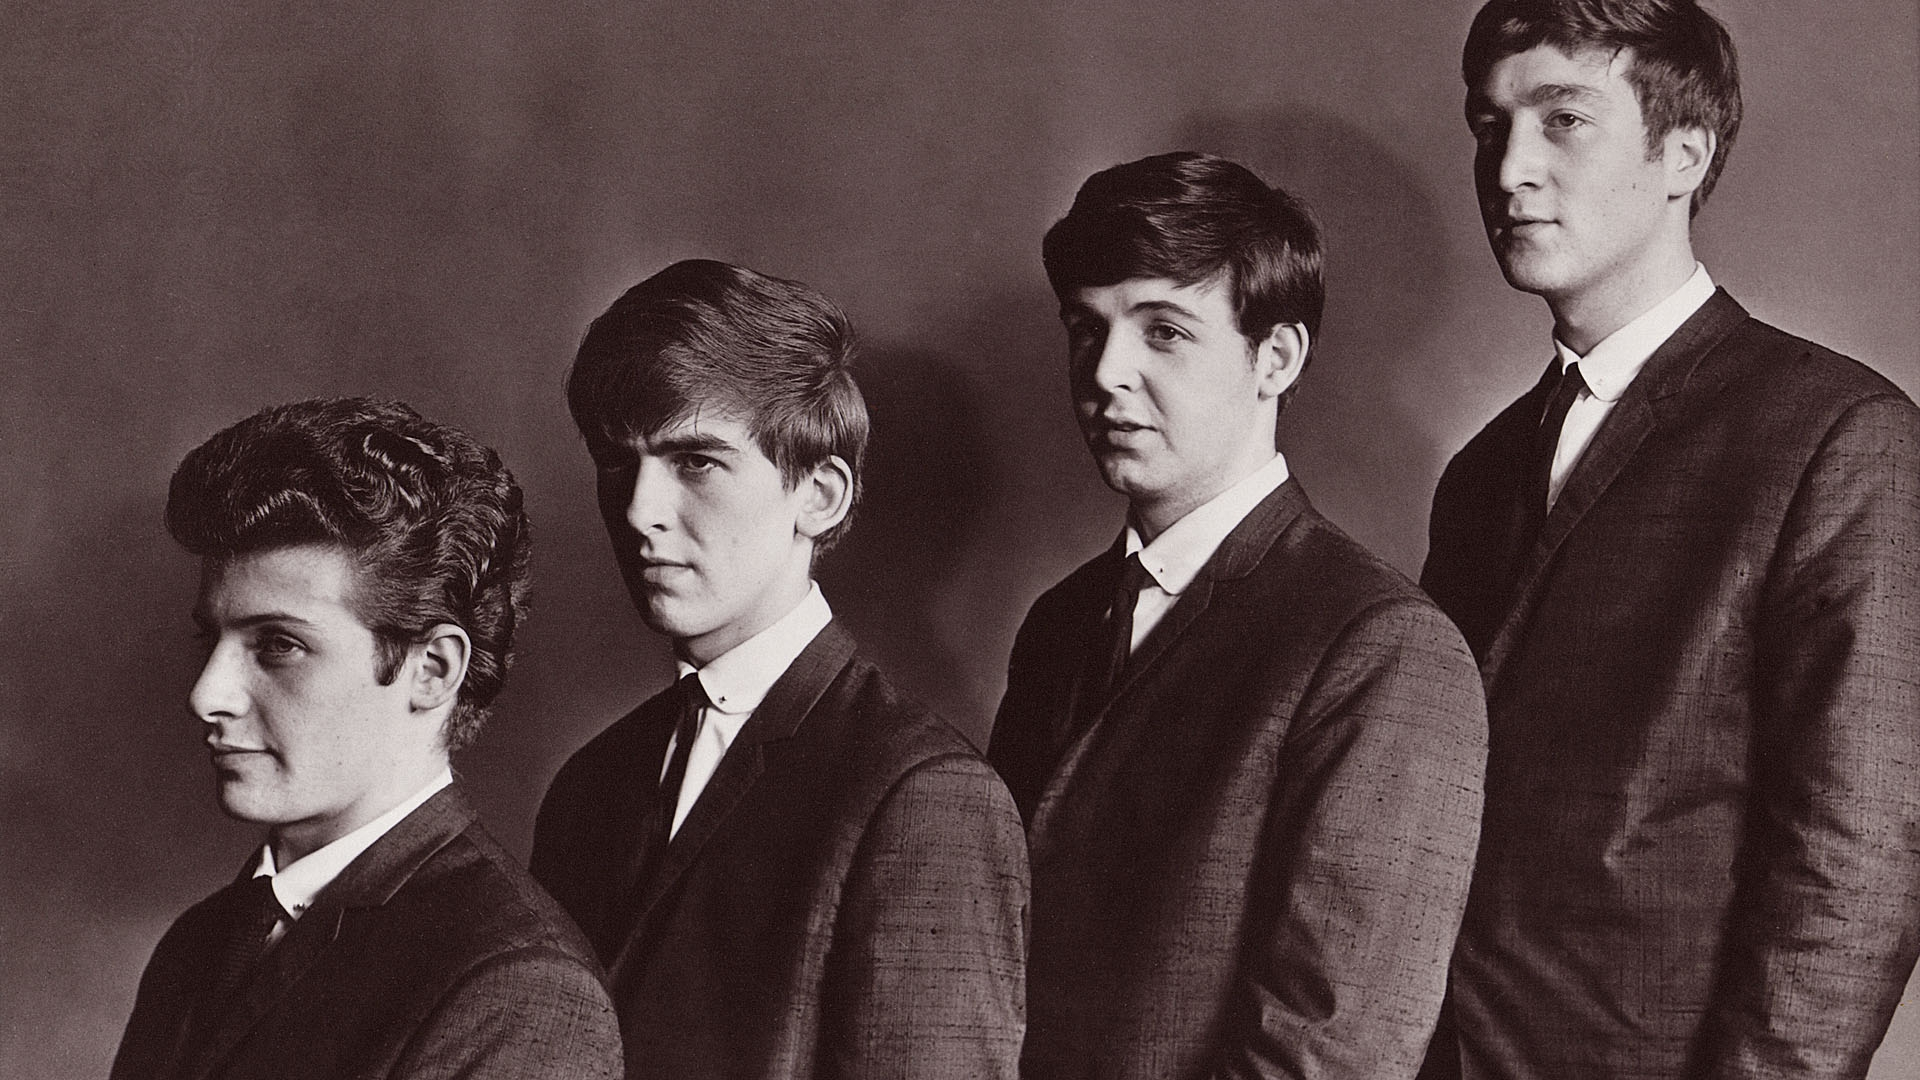 Fantastic Wallpaper Mac The Beatles - the_beatles_band_faces_suits_ties_11953_1920x1080  You Should Have_452125.jpg